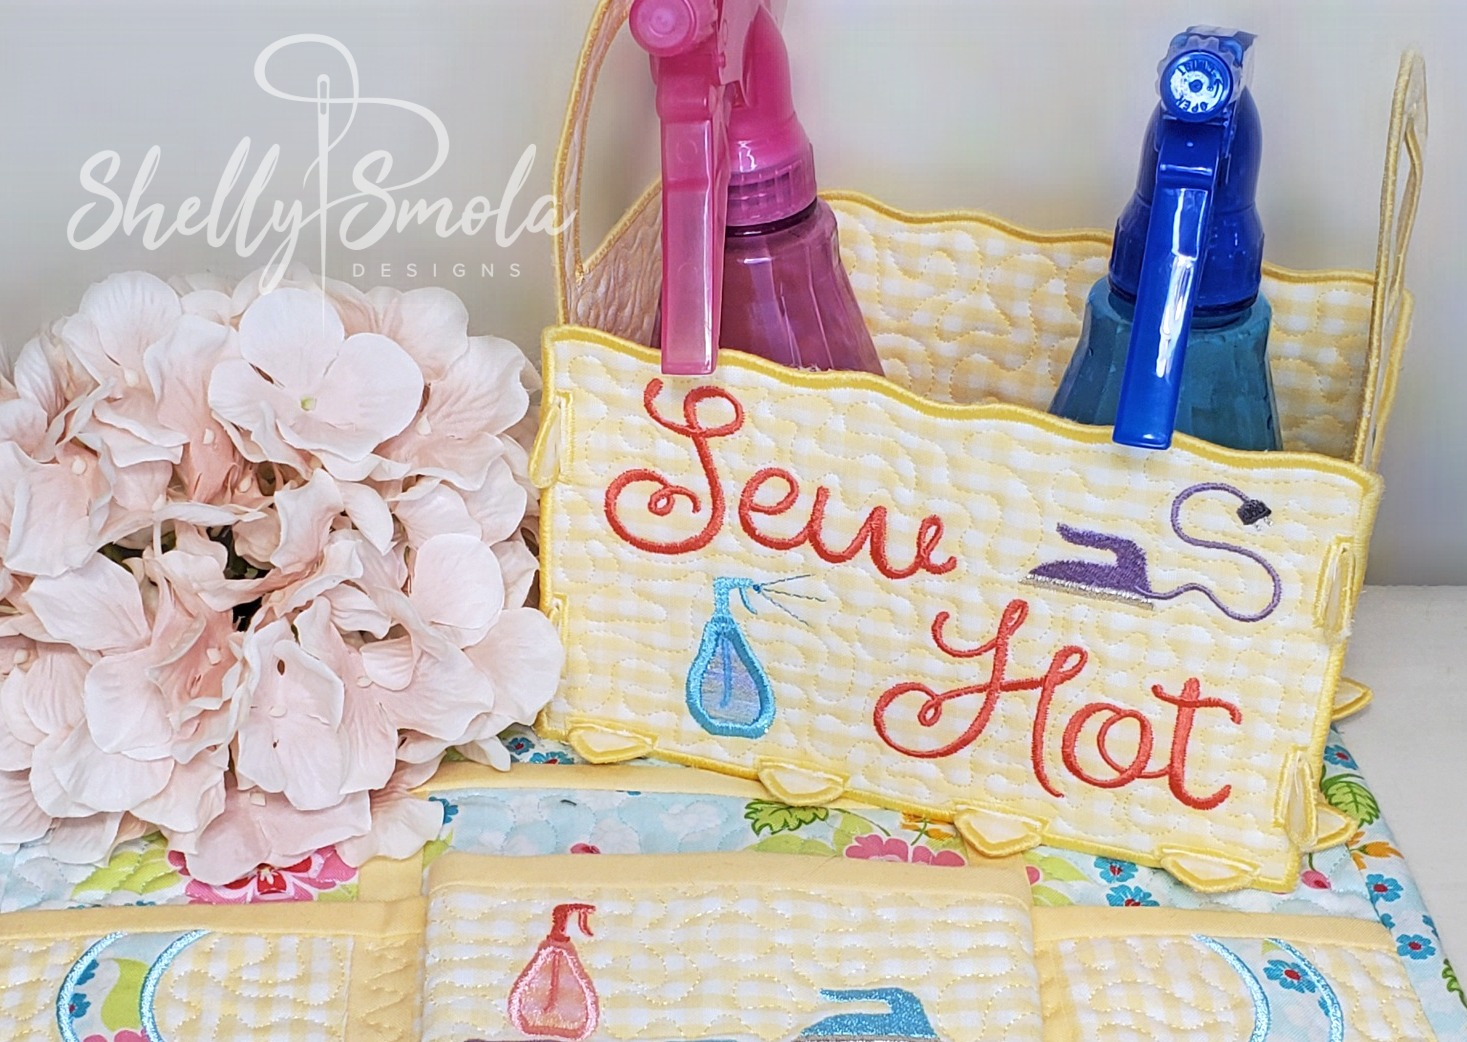 Sew Hot Projects by Shelly Smola